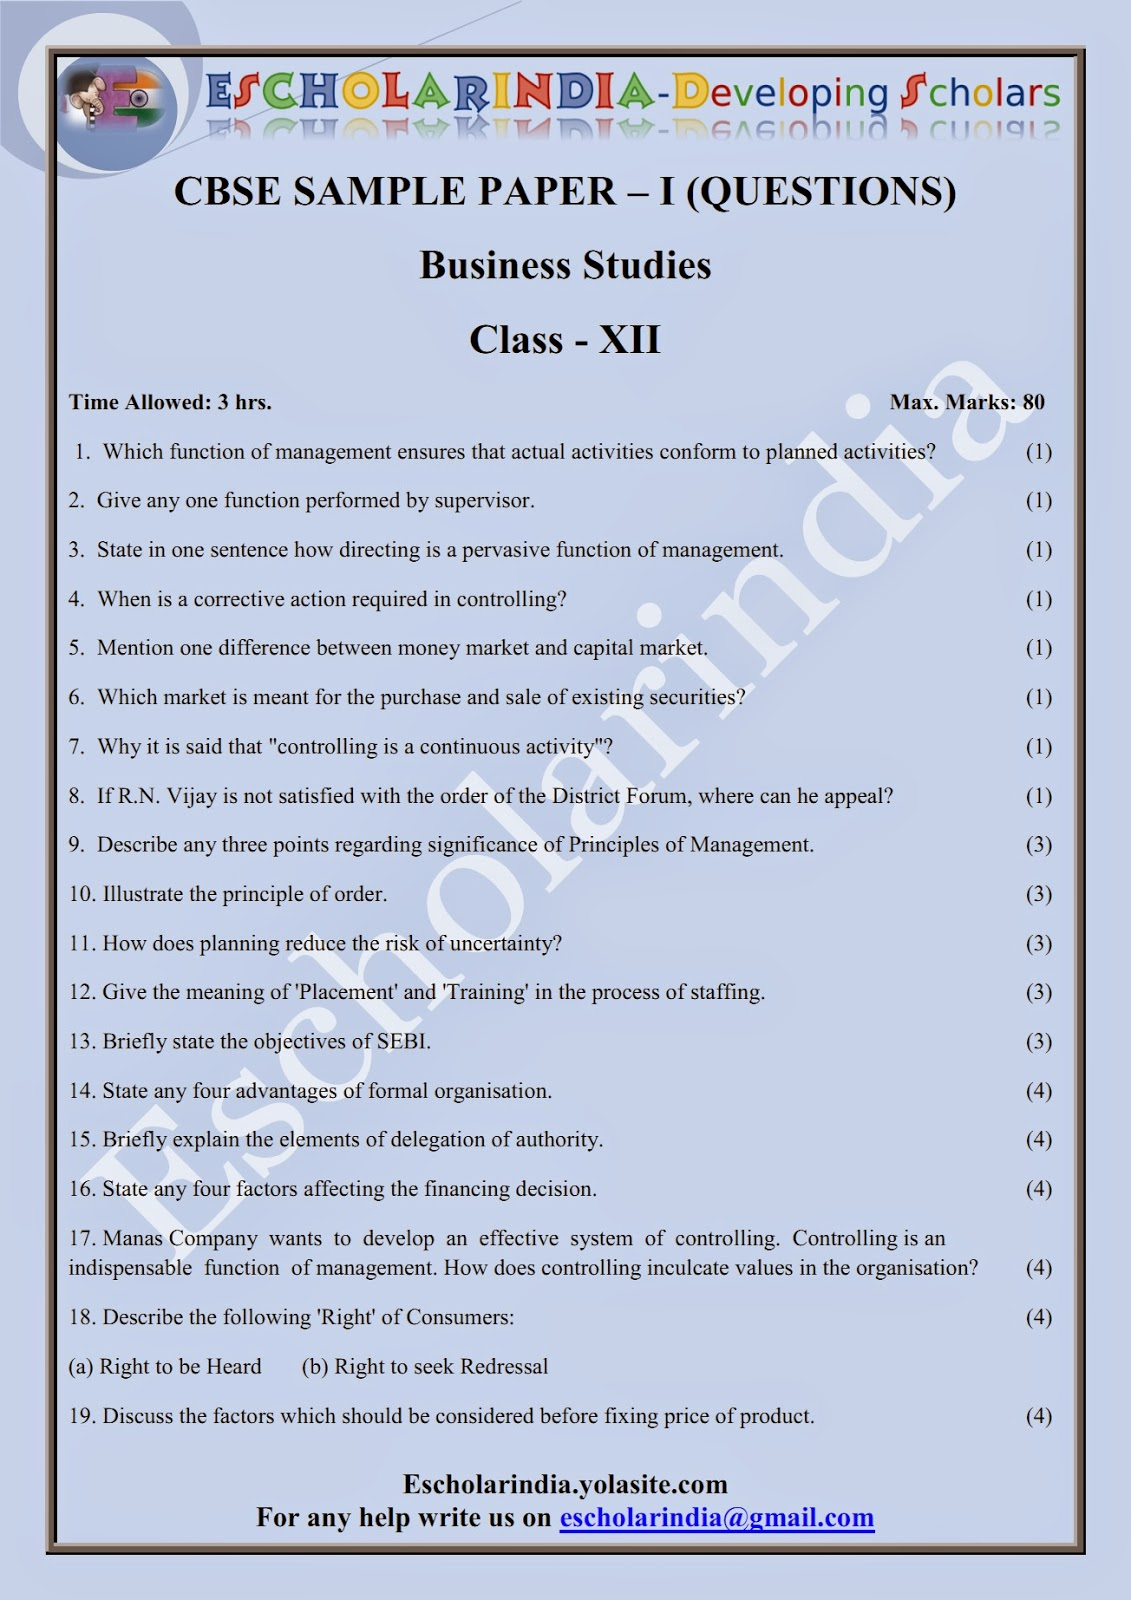 Escholarindia developing scholars cbse class 12th business cbse class 12th business studies mock test papers questions solutions 1 cbse board 2015 malvernweather Choice Image